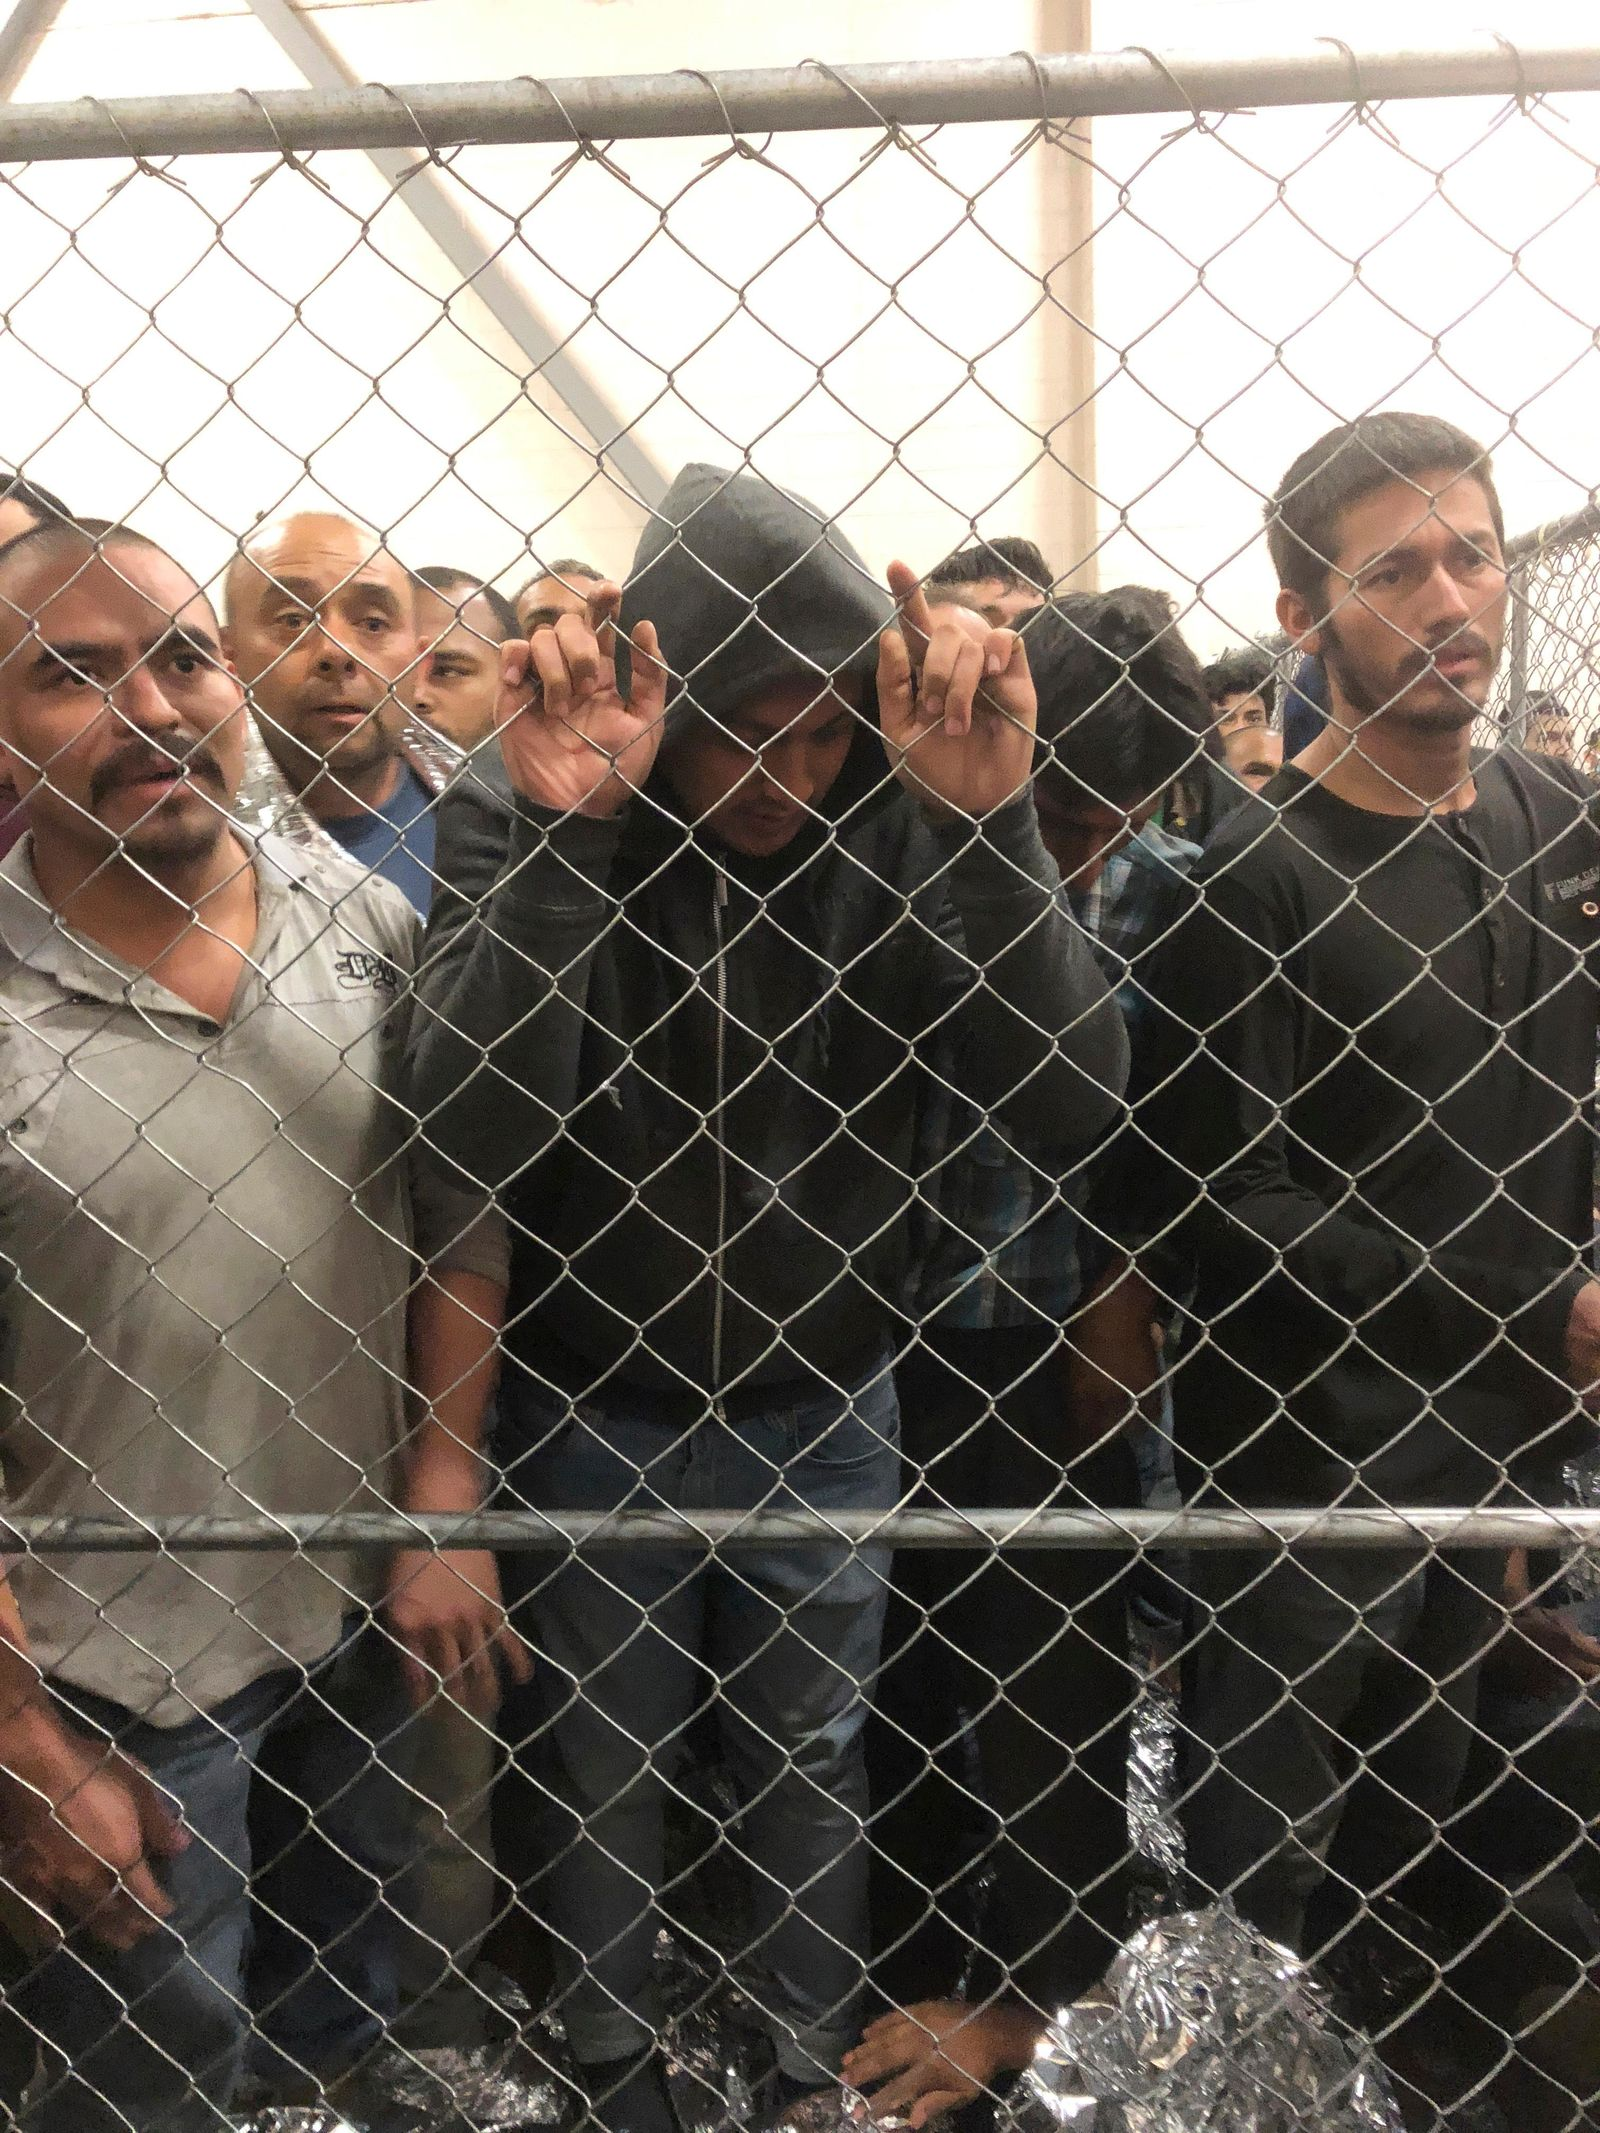 Men stand in a U.S. Immigration and Border Enforcement detention center in McAllen, Texas, Friday, July 12, 2019, as Vice President Mike Pence visits. (Josh Dawsey/The Washington Post via AP)